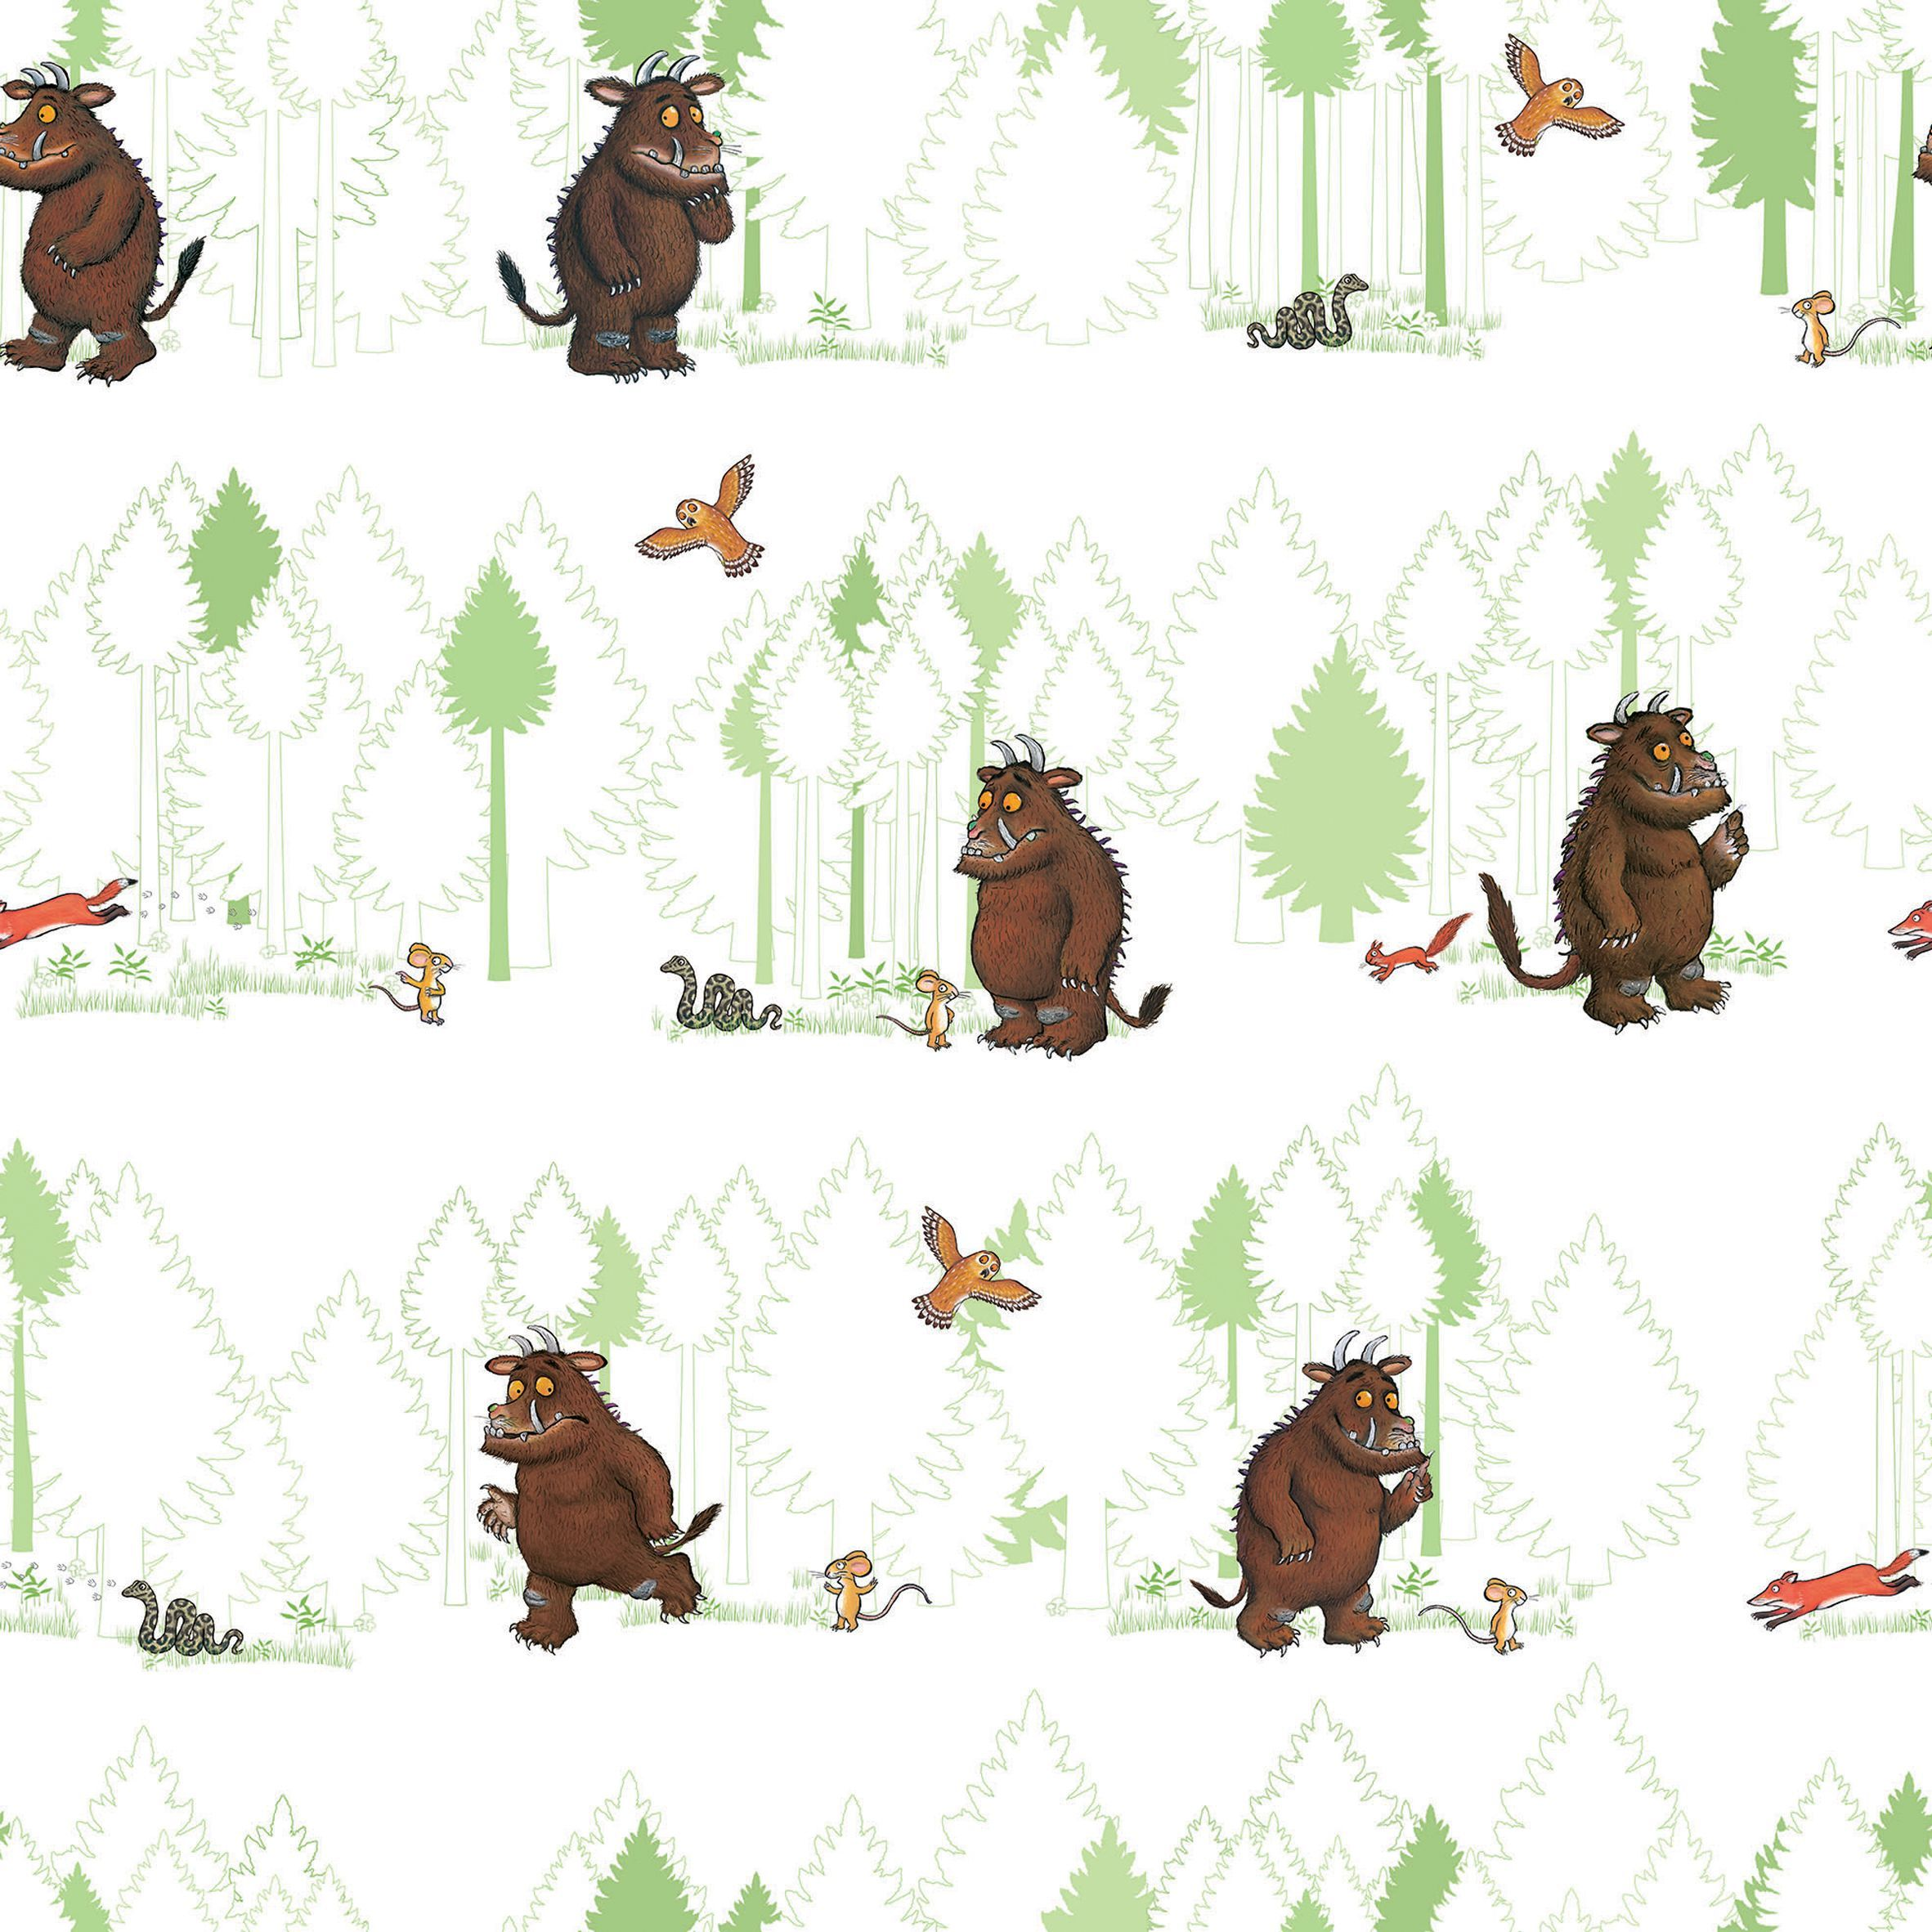 The gruffalo wallpaper wallpaper bedrooms and room the gruffalo wallpaper amipublicfo Image collections